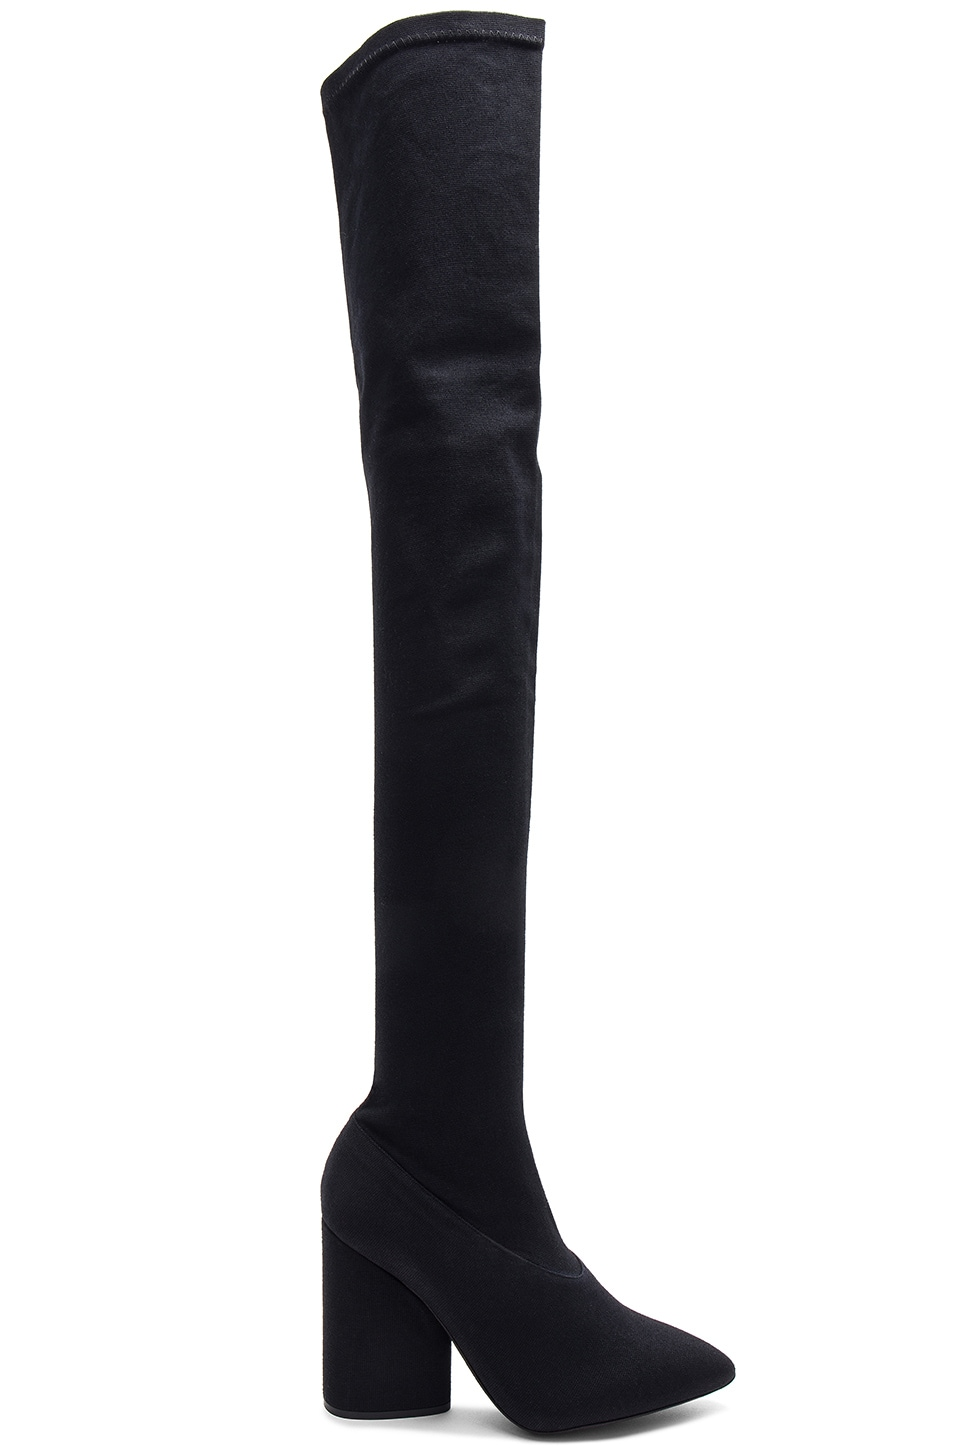 Thigh High Boot by YEEZY Season 4